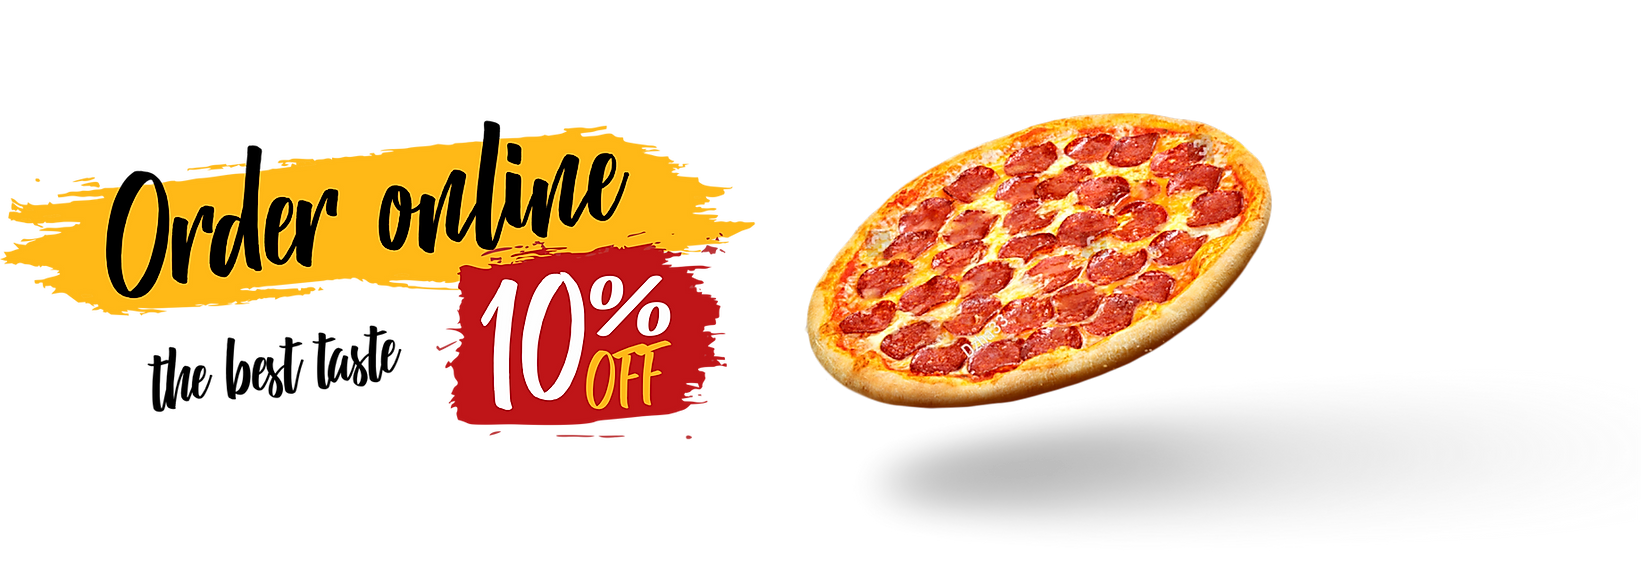 10%off.png